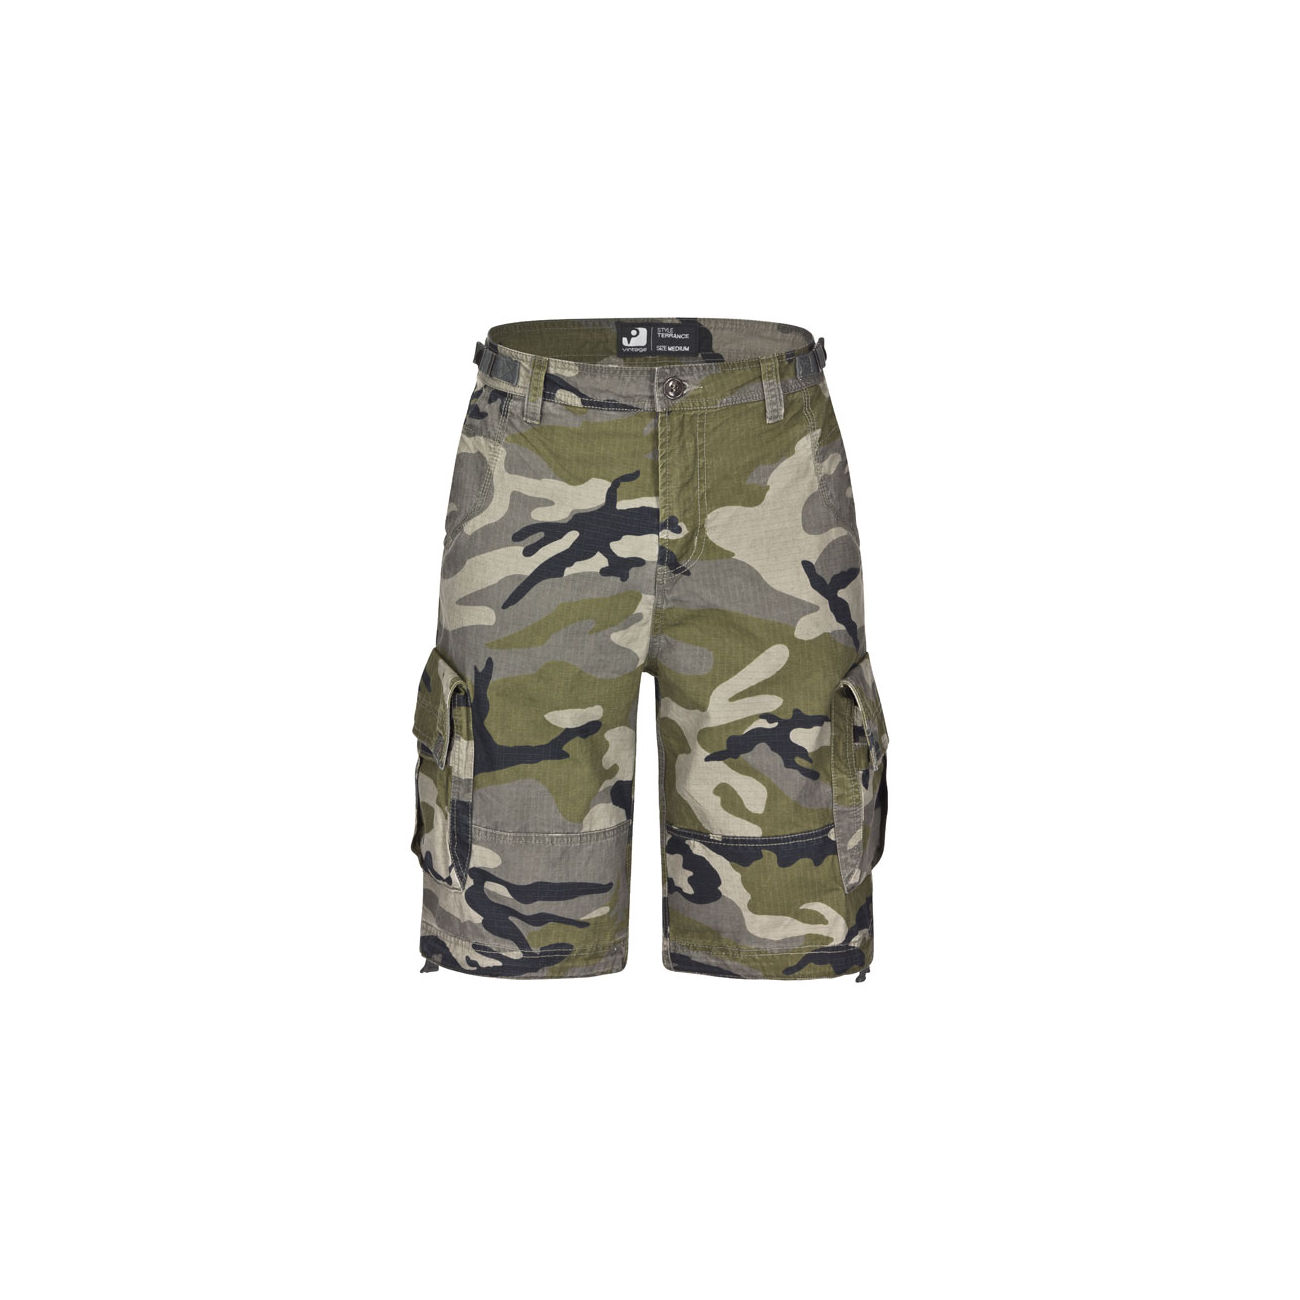 Vintage Industries Shorts Terrance streetcamo 0